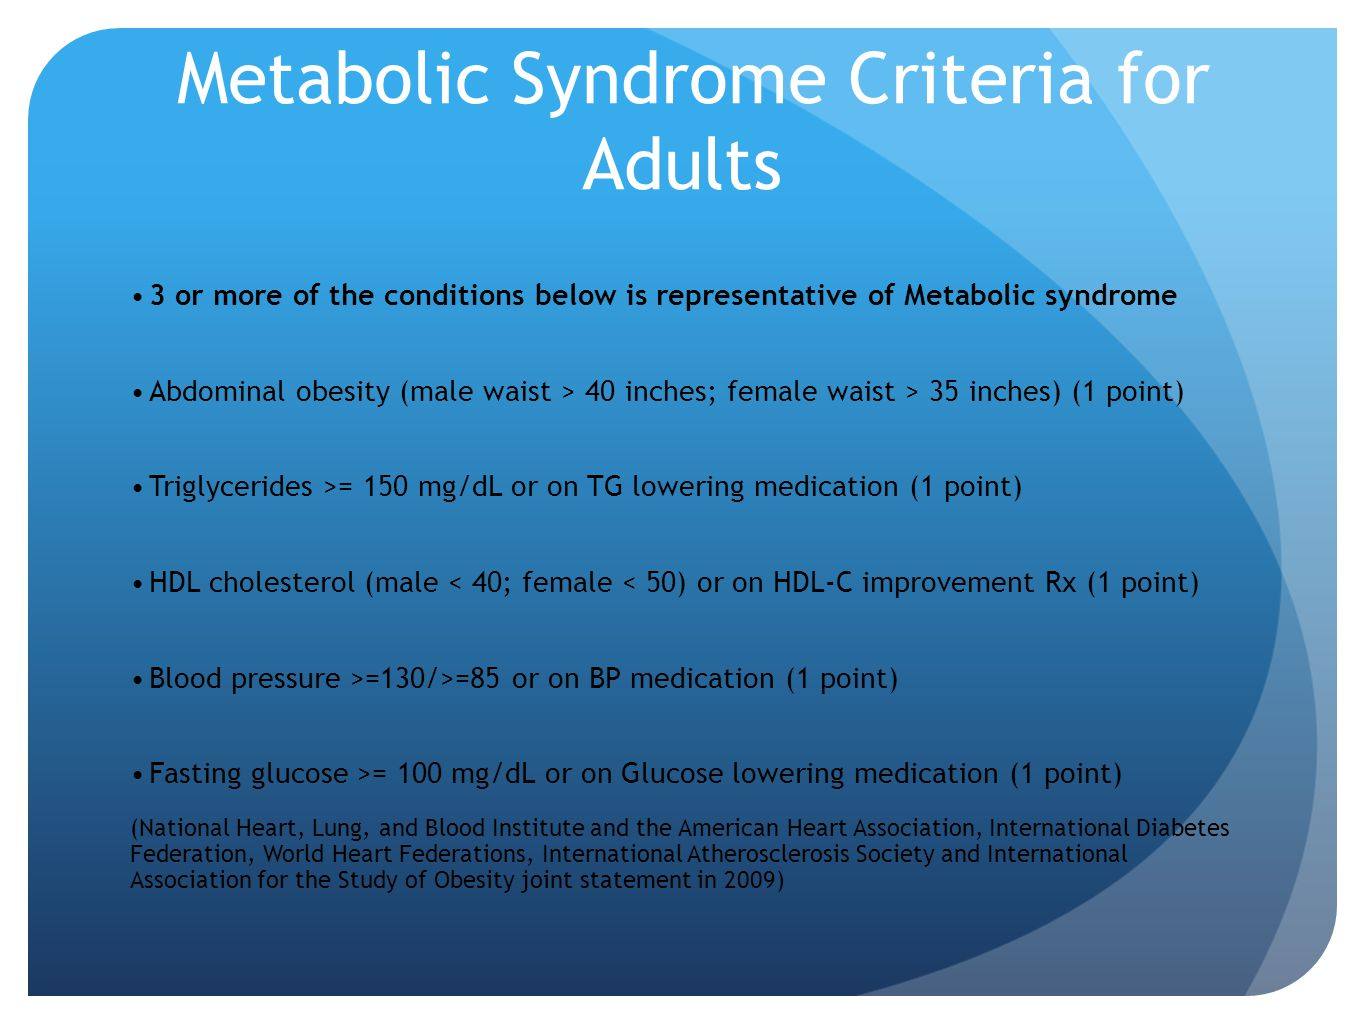 Metabolic Syndrome Criteria for Adults